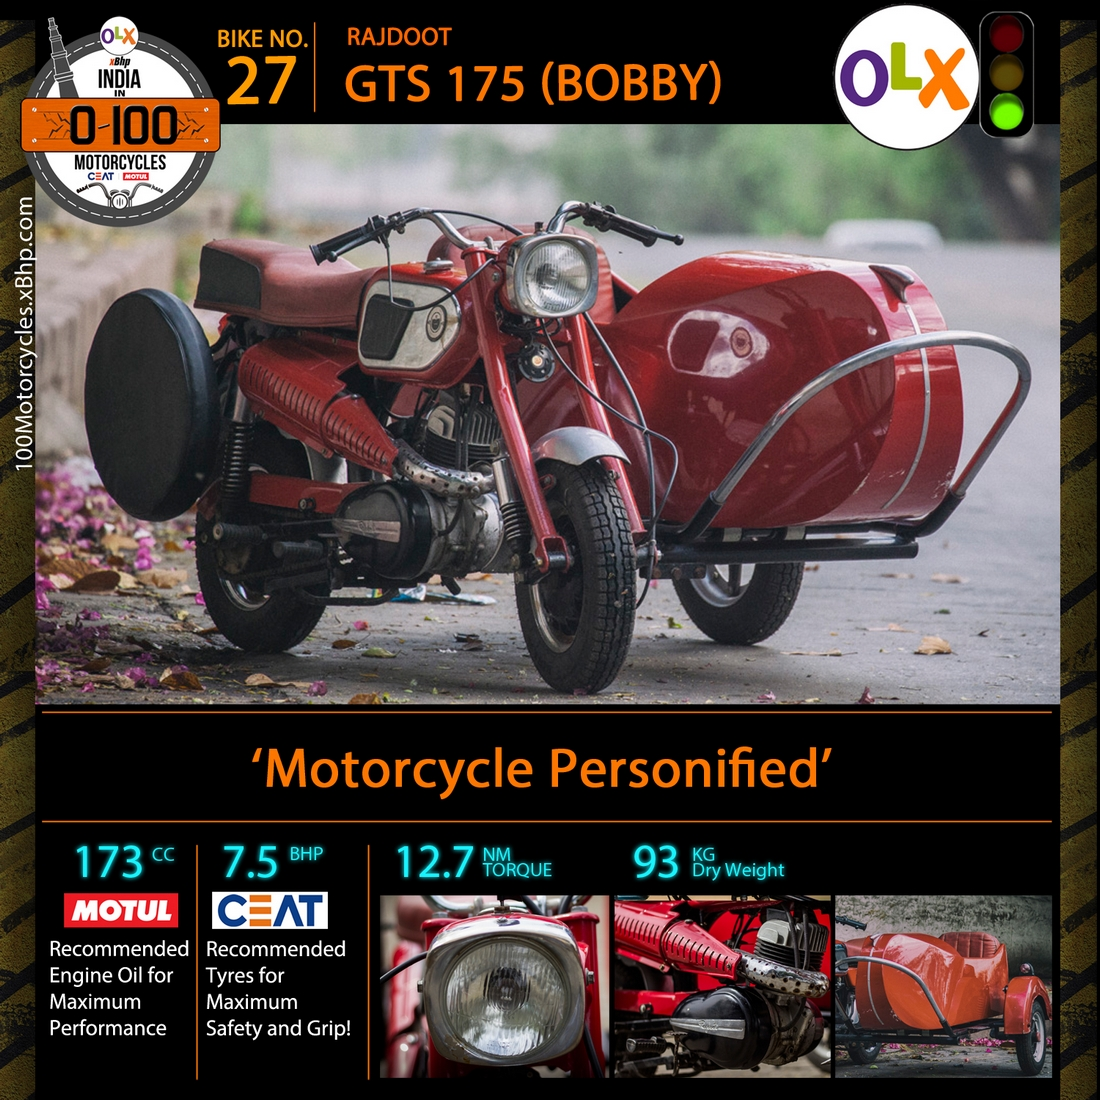 Rajdoot GTS 175 (Bobby) - xBhp Presents India in 0-100 Motorcycles'